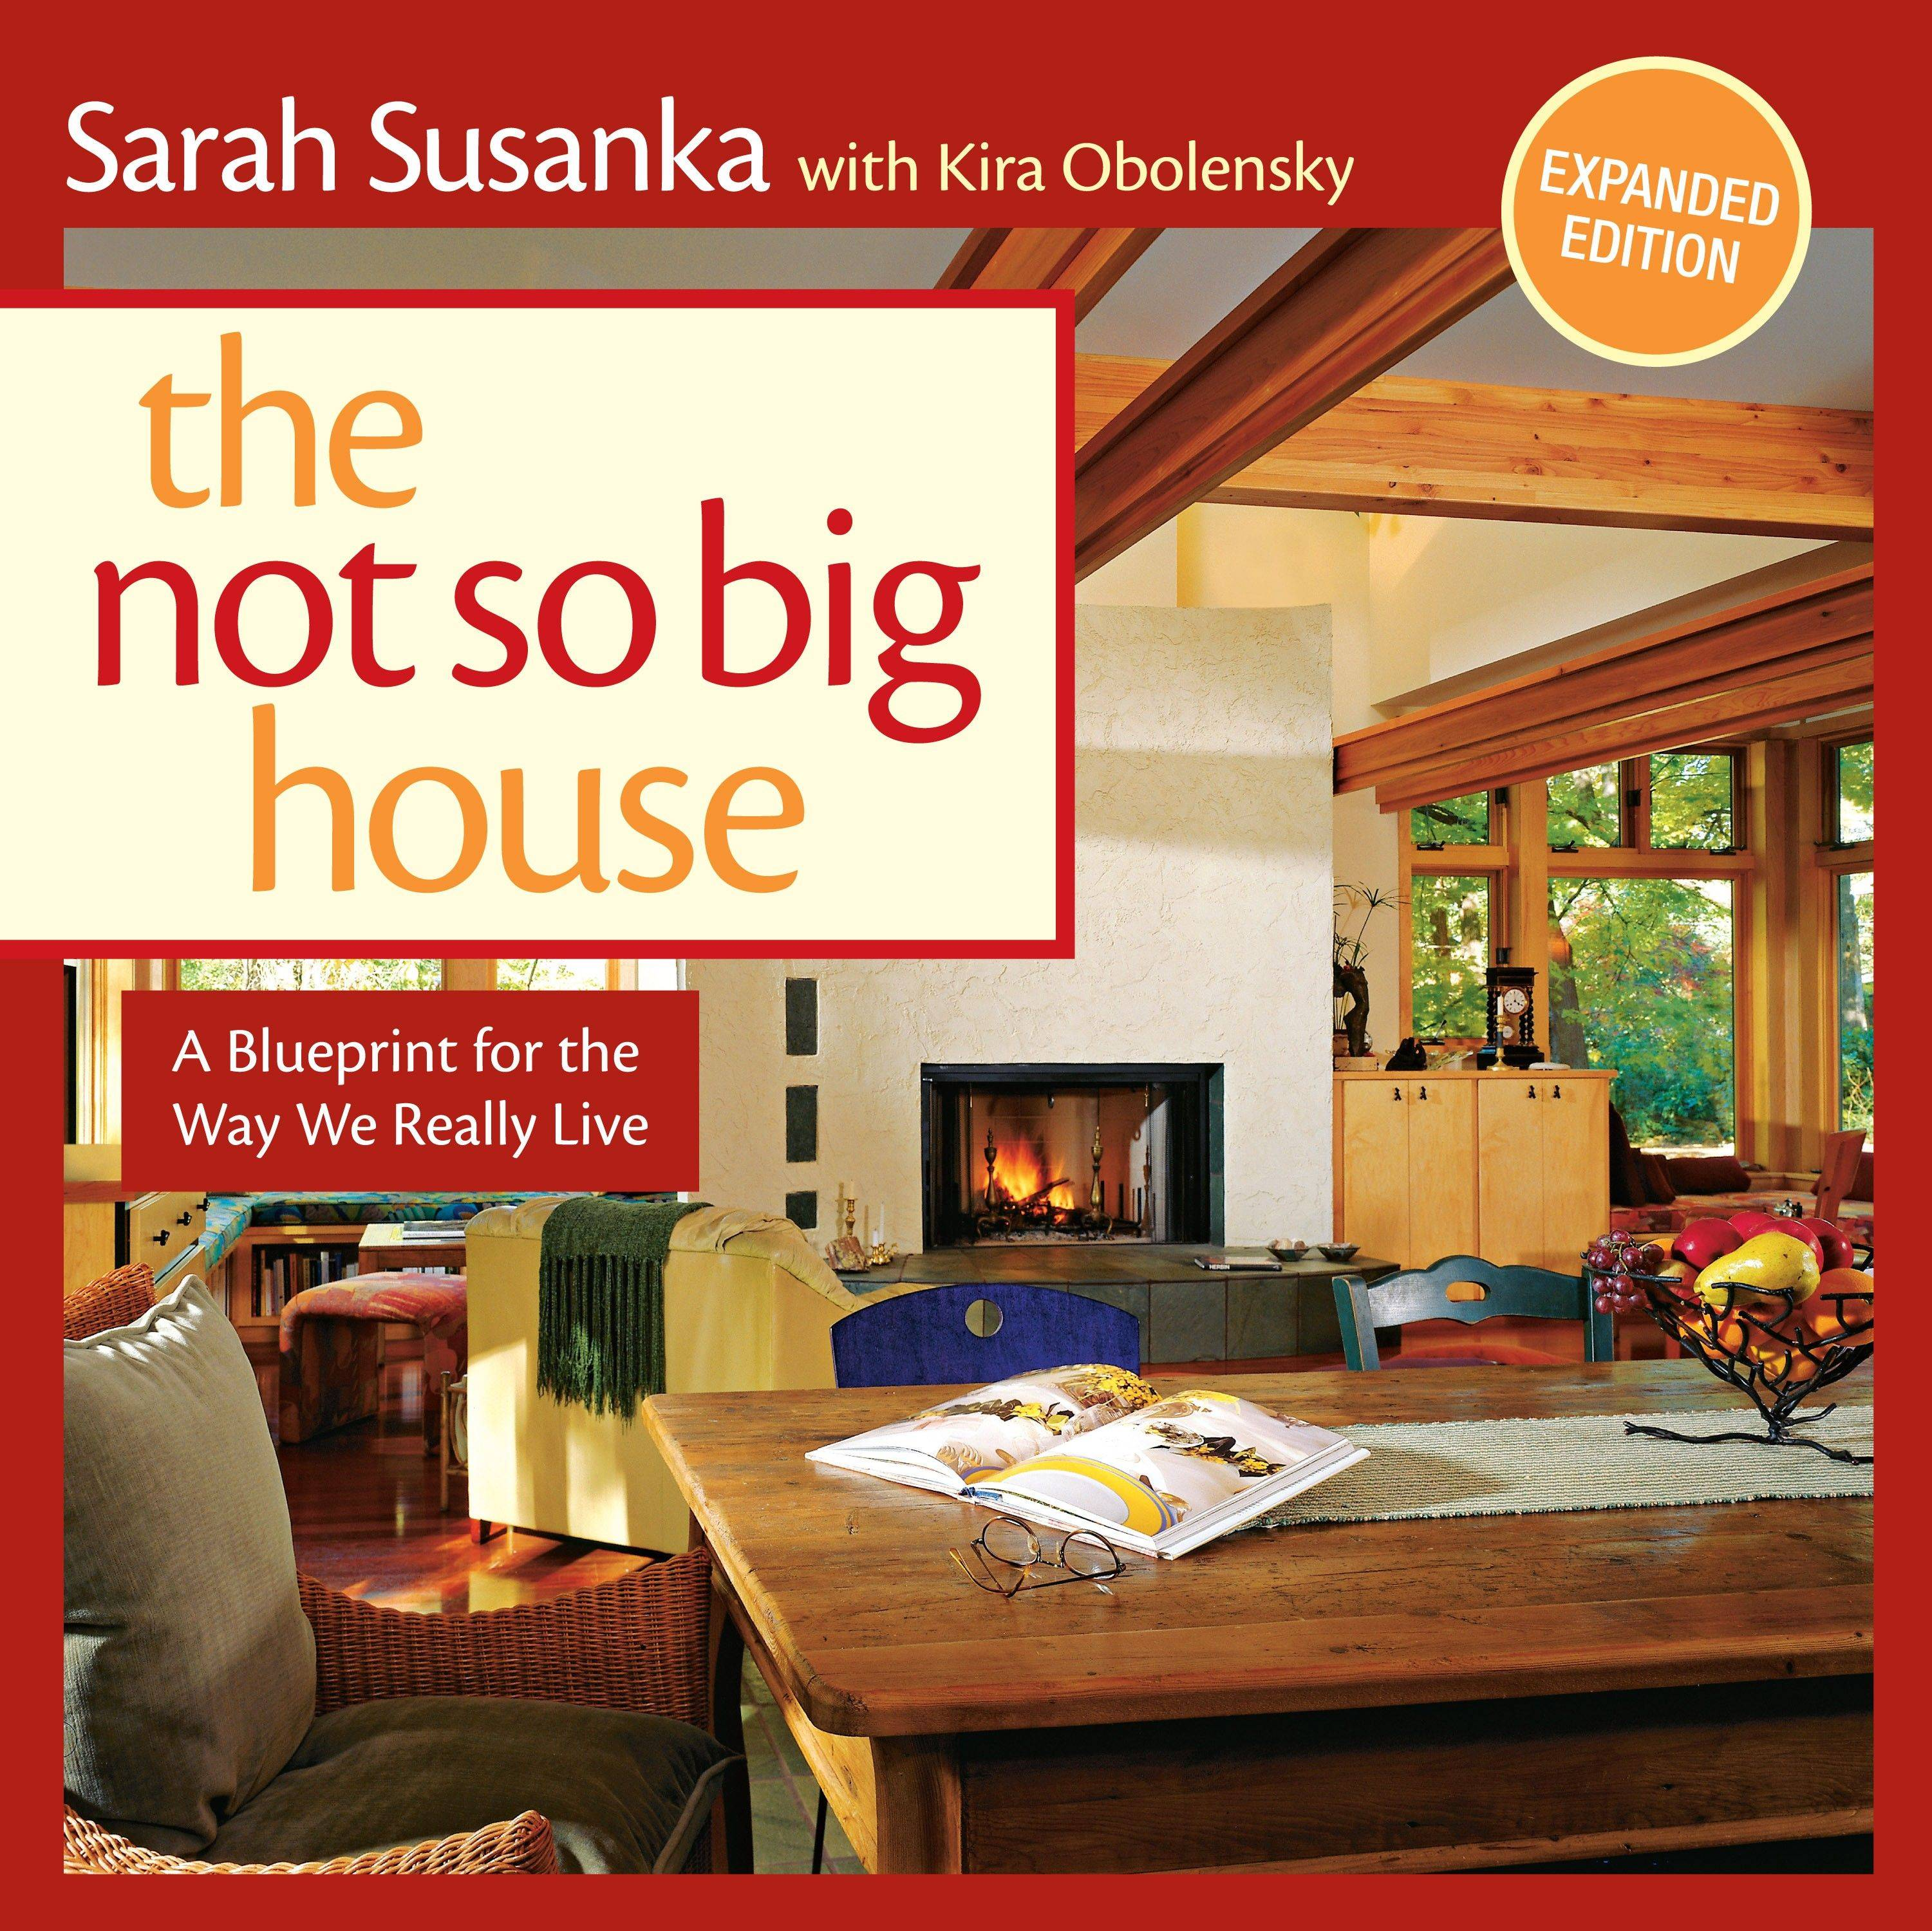 Sarah Susanka's first book was republished a few years ago by The Taunton Press.